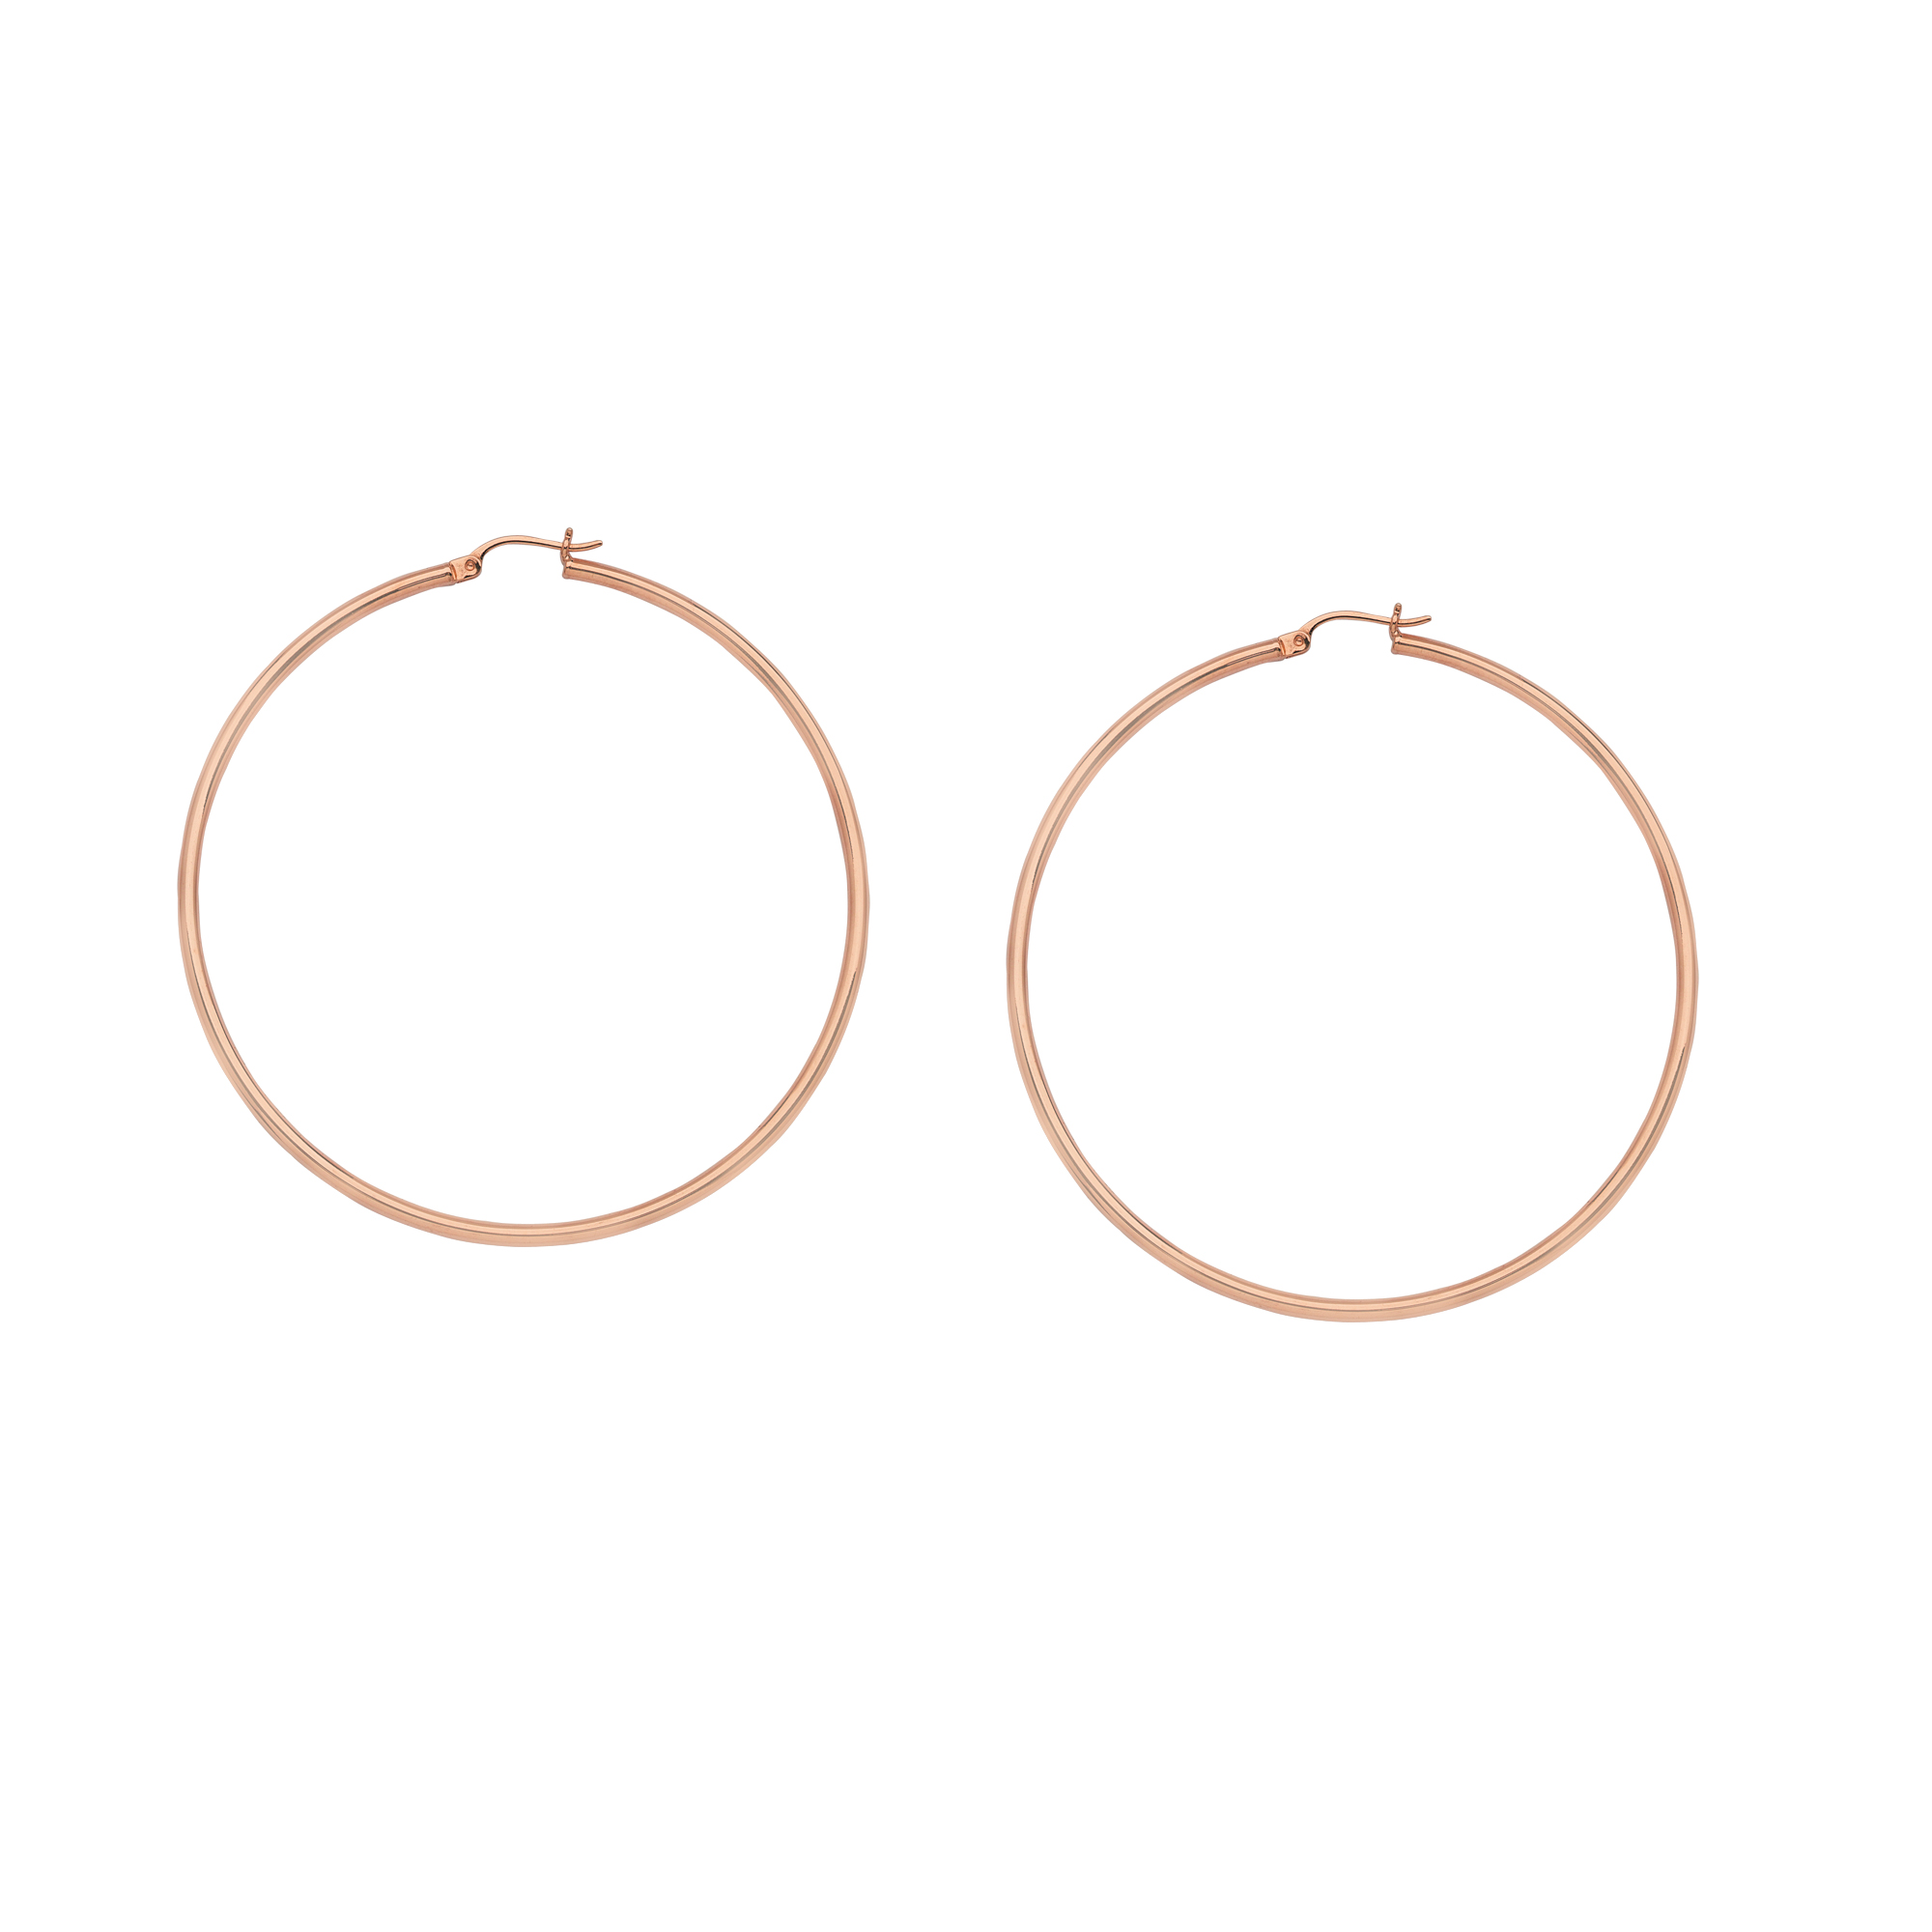 Hoop Earrings, 14Kt Gold Hoop Earring